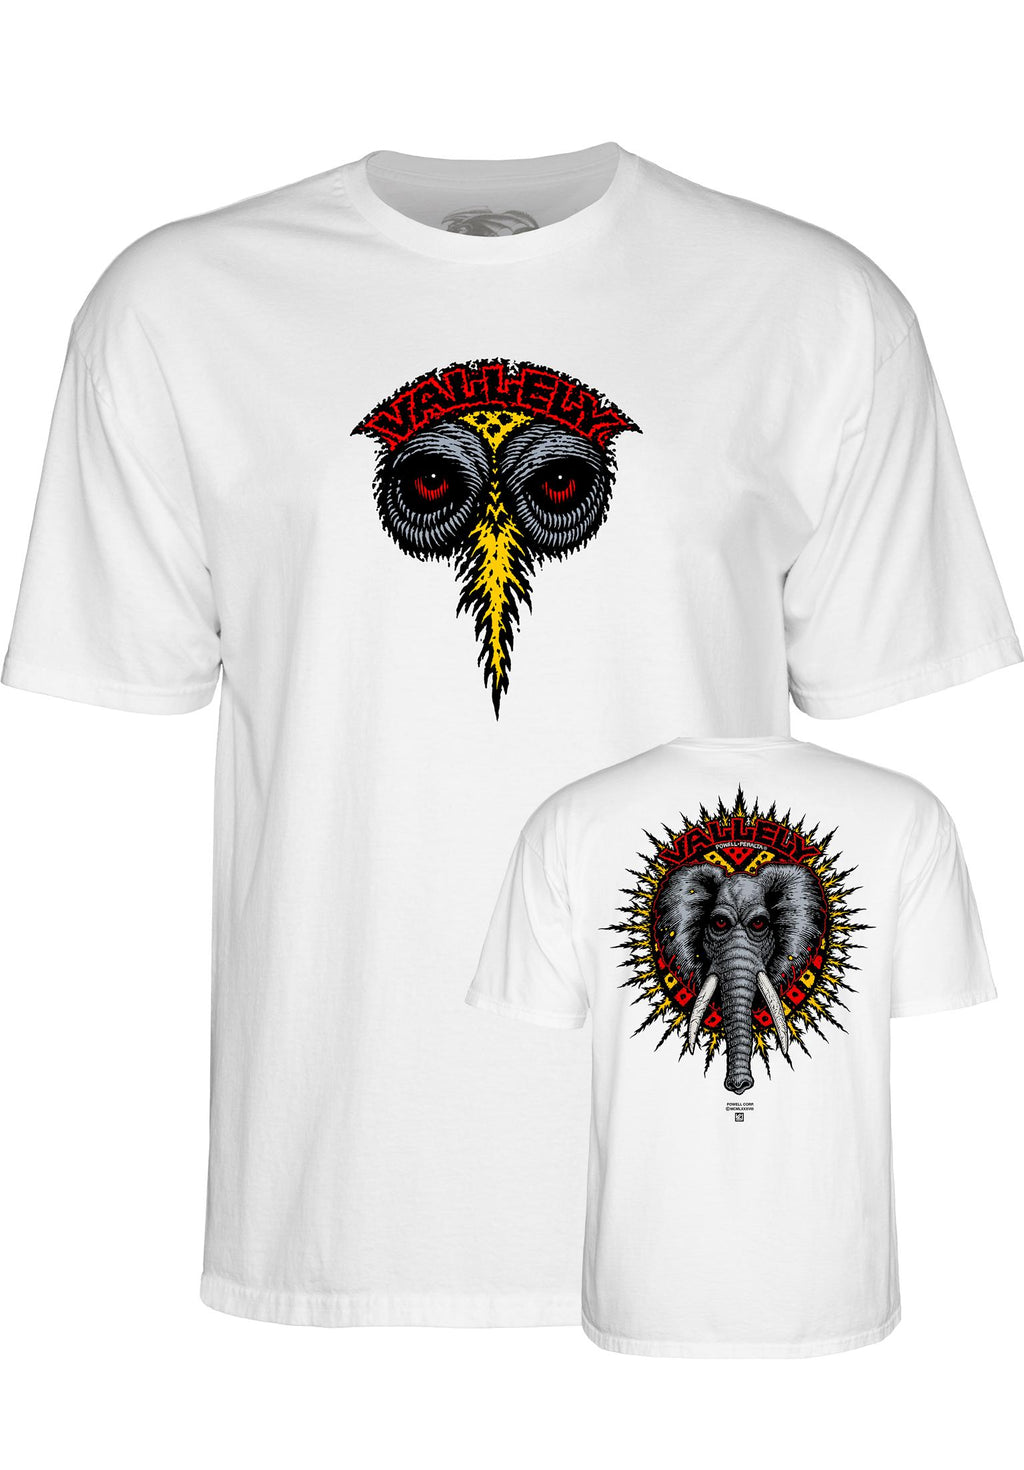 POWELL-PERALTA 'Vallely Elephant' T-Shirt